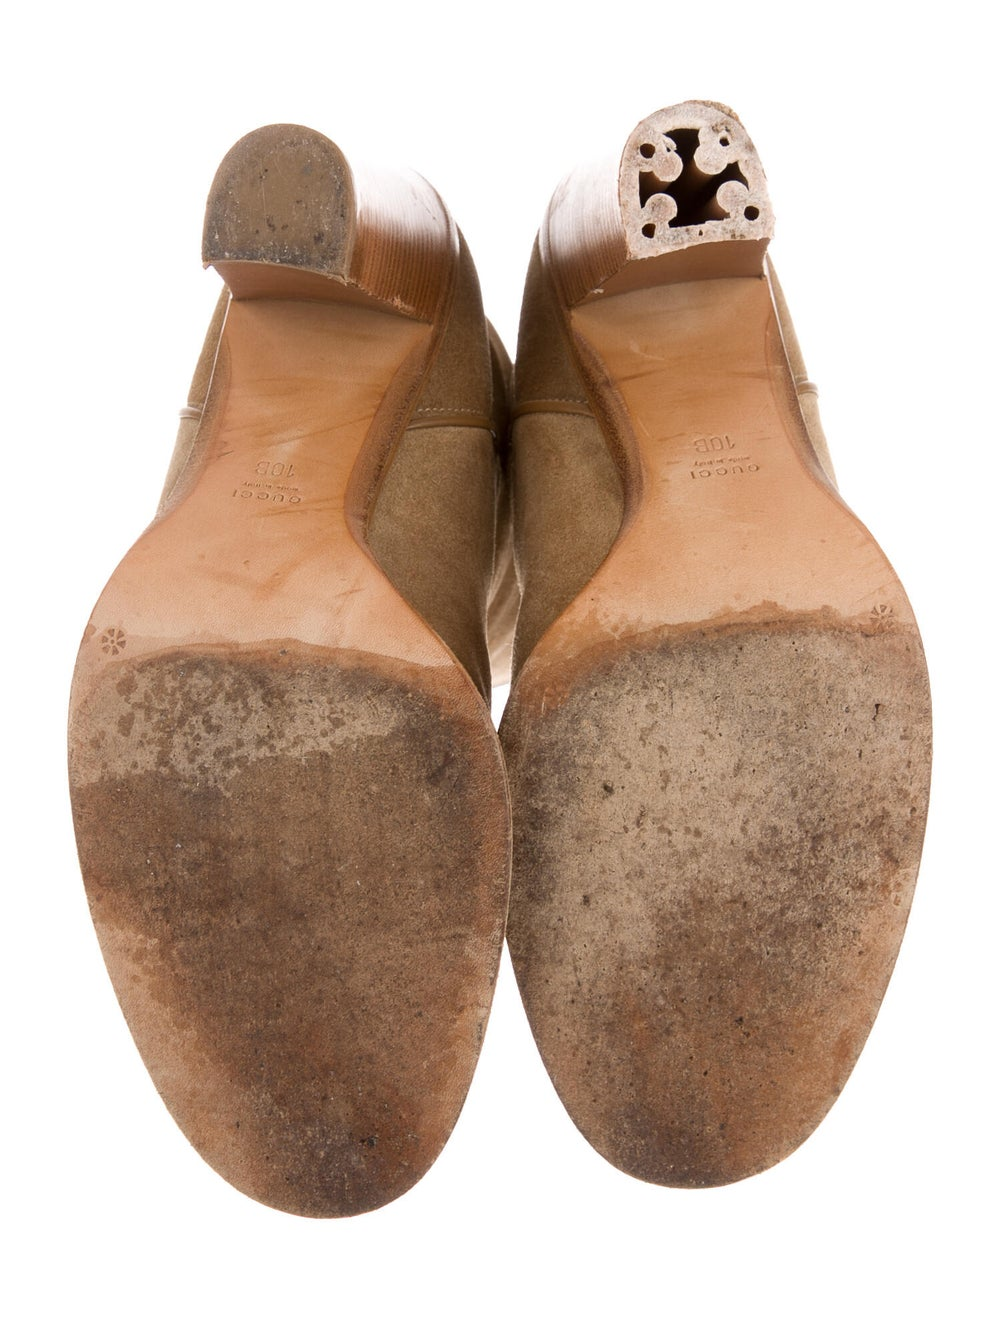 Gucci Suede Western Boots - image 5